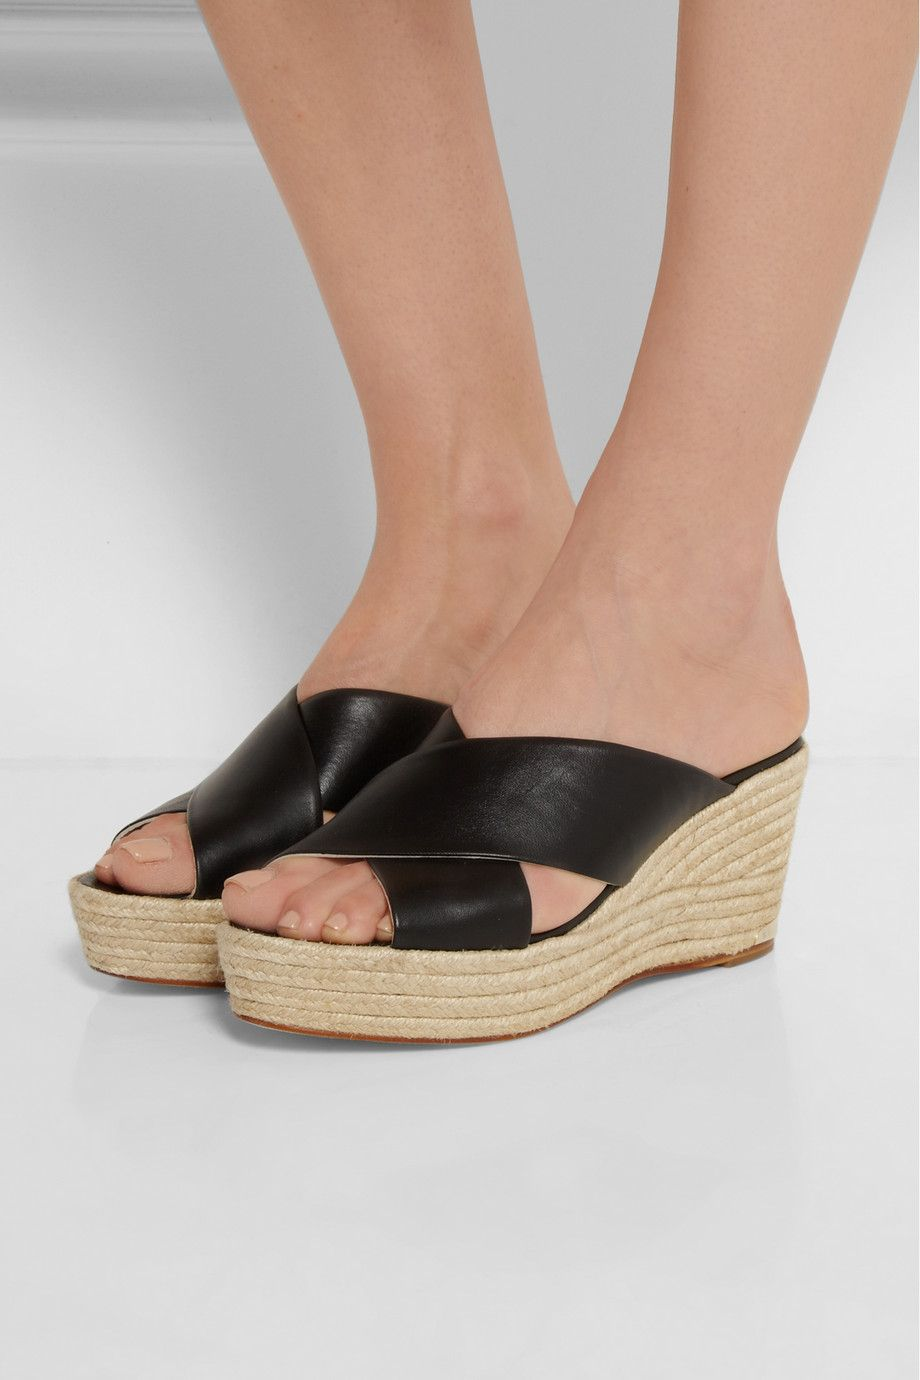 Paloma Barceló | Leather wedge espadrilles |